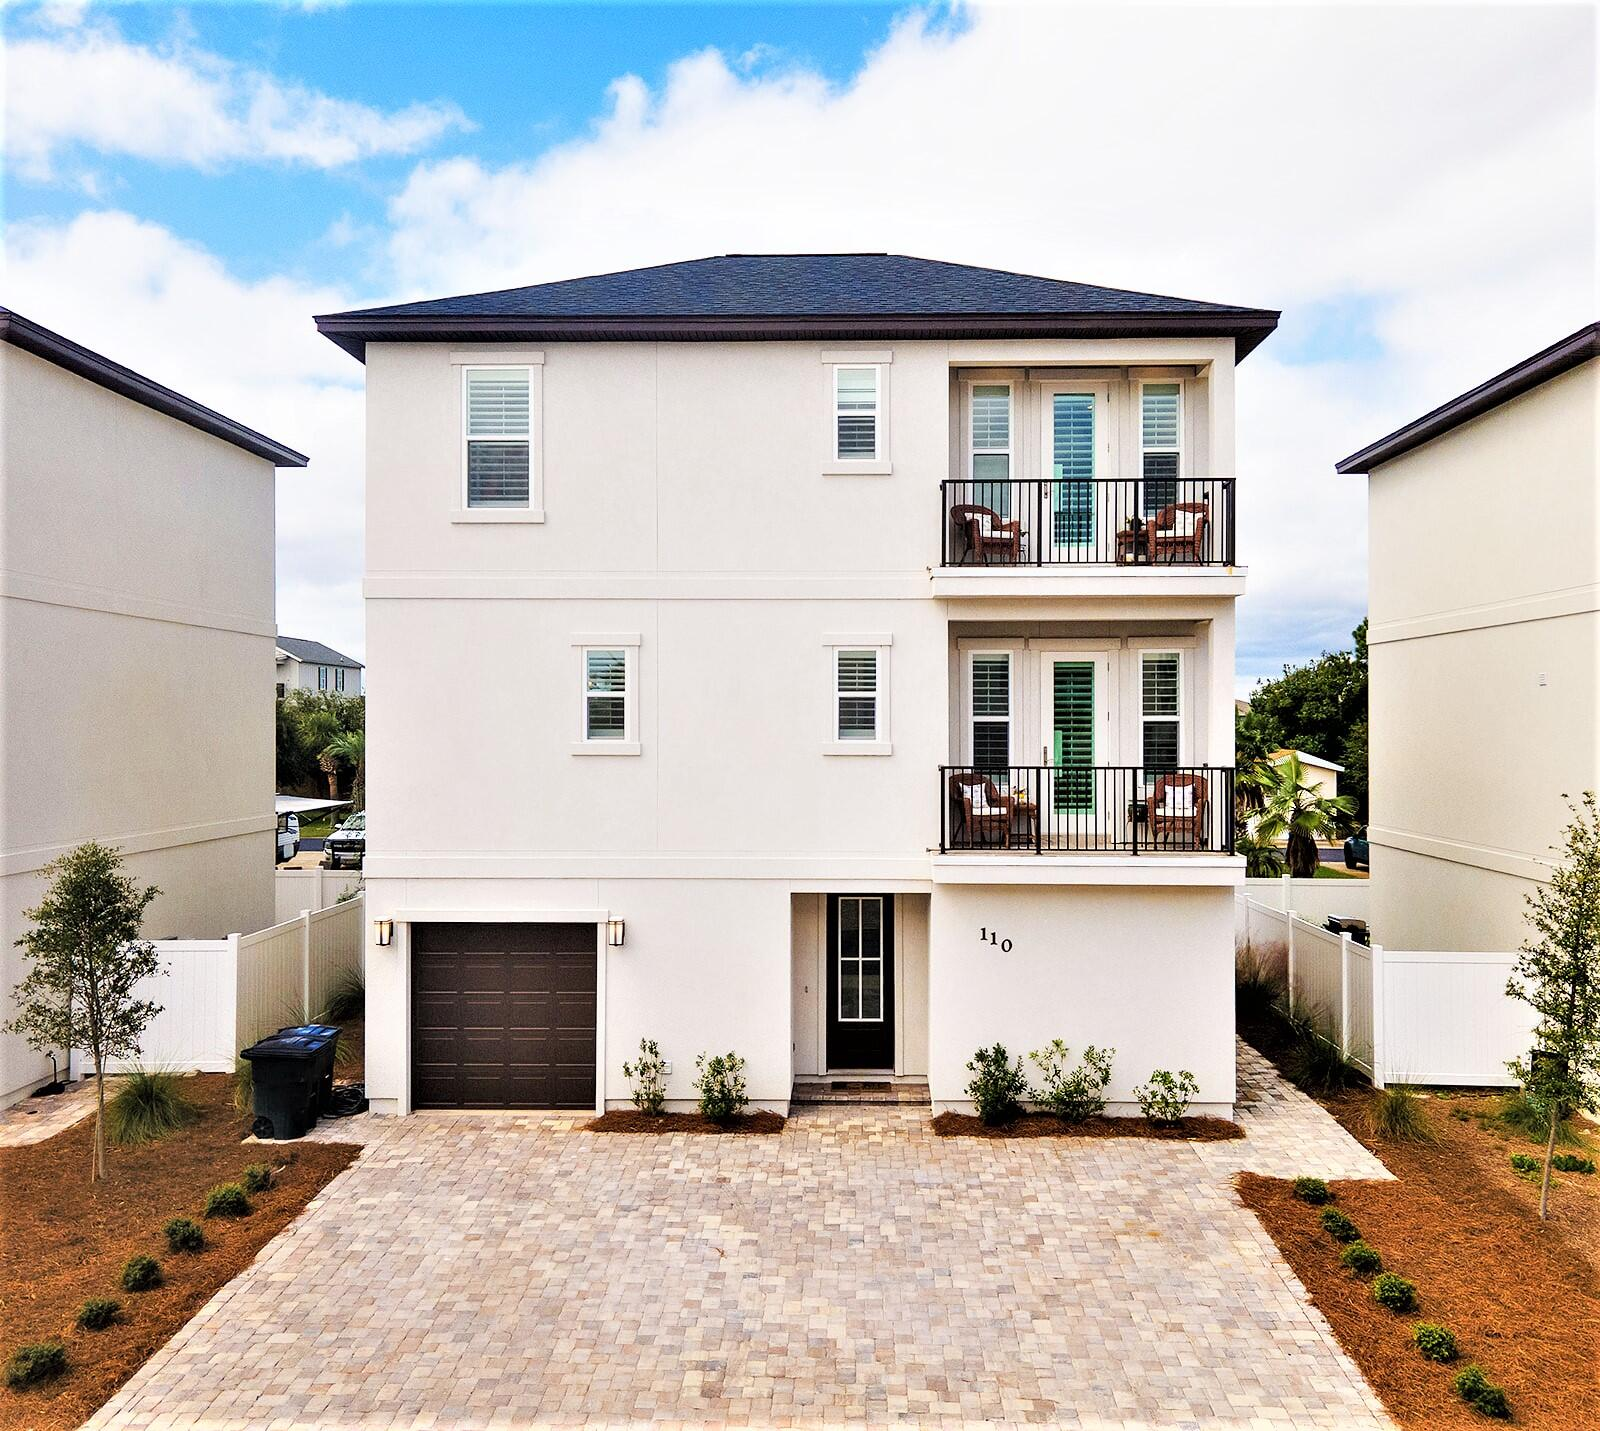 Built in 2021 by the esteemed Boswell Builders. This fully furnished home is within walking distance